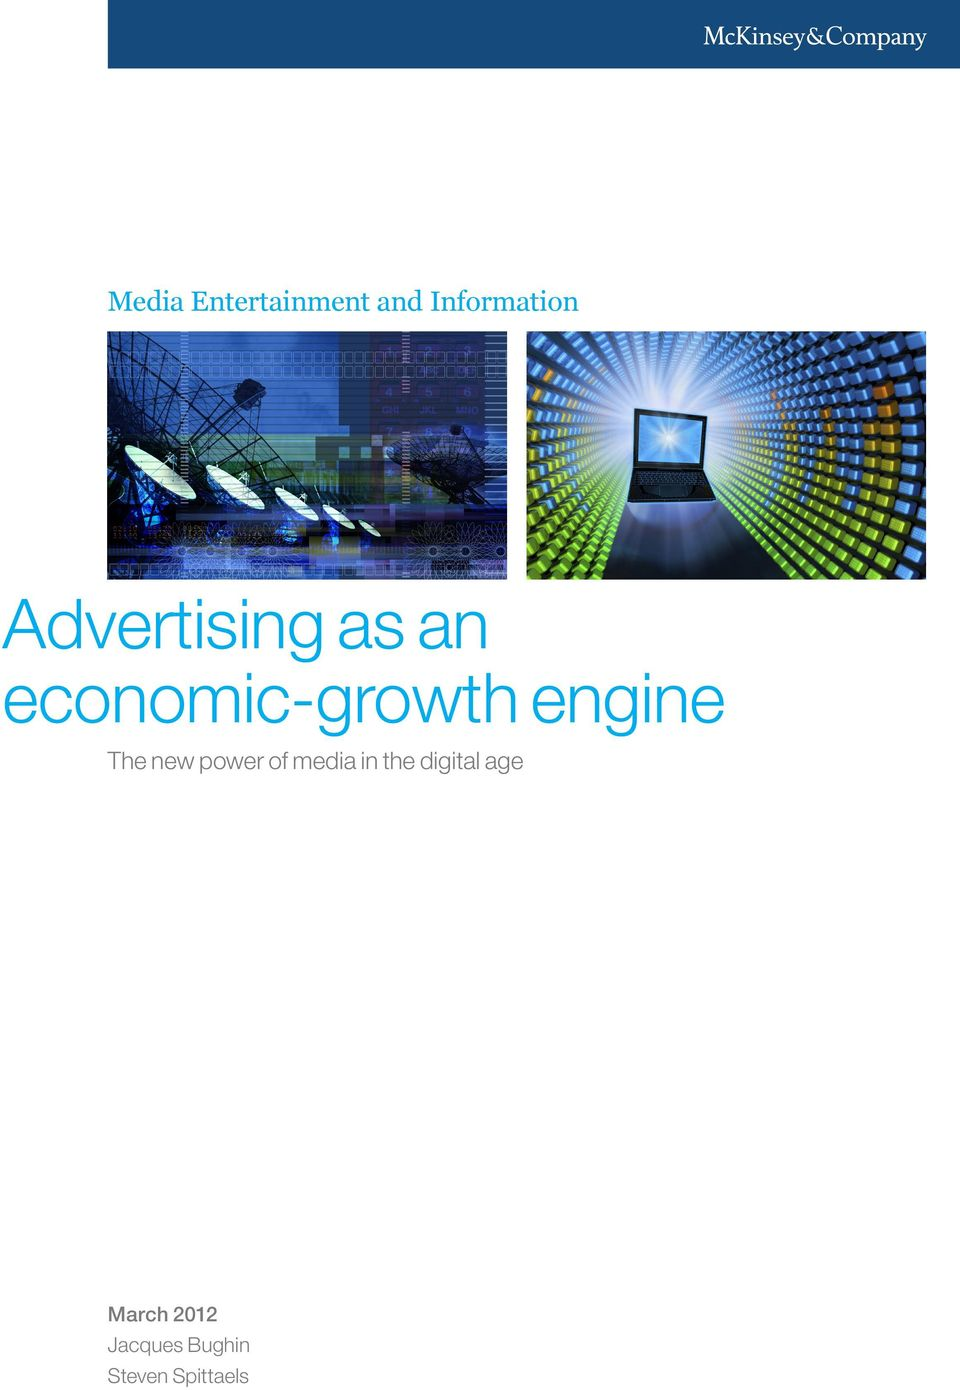 Advertising as an economic-growth engine - PDF